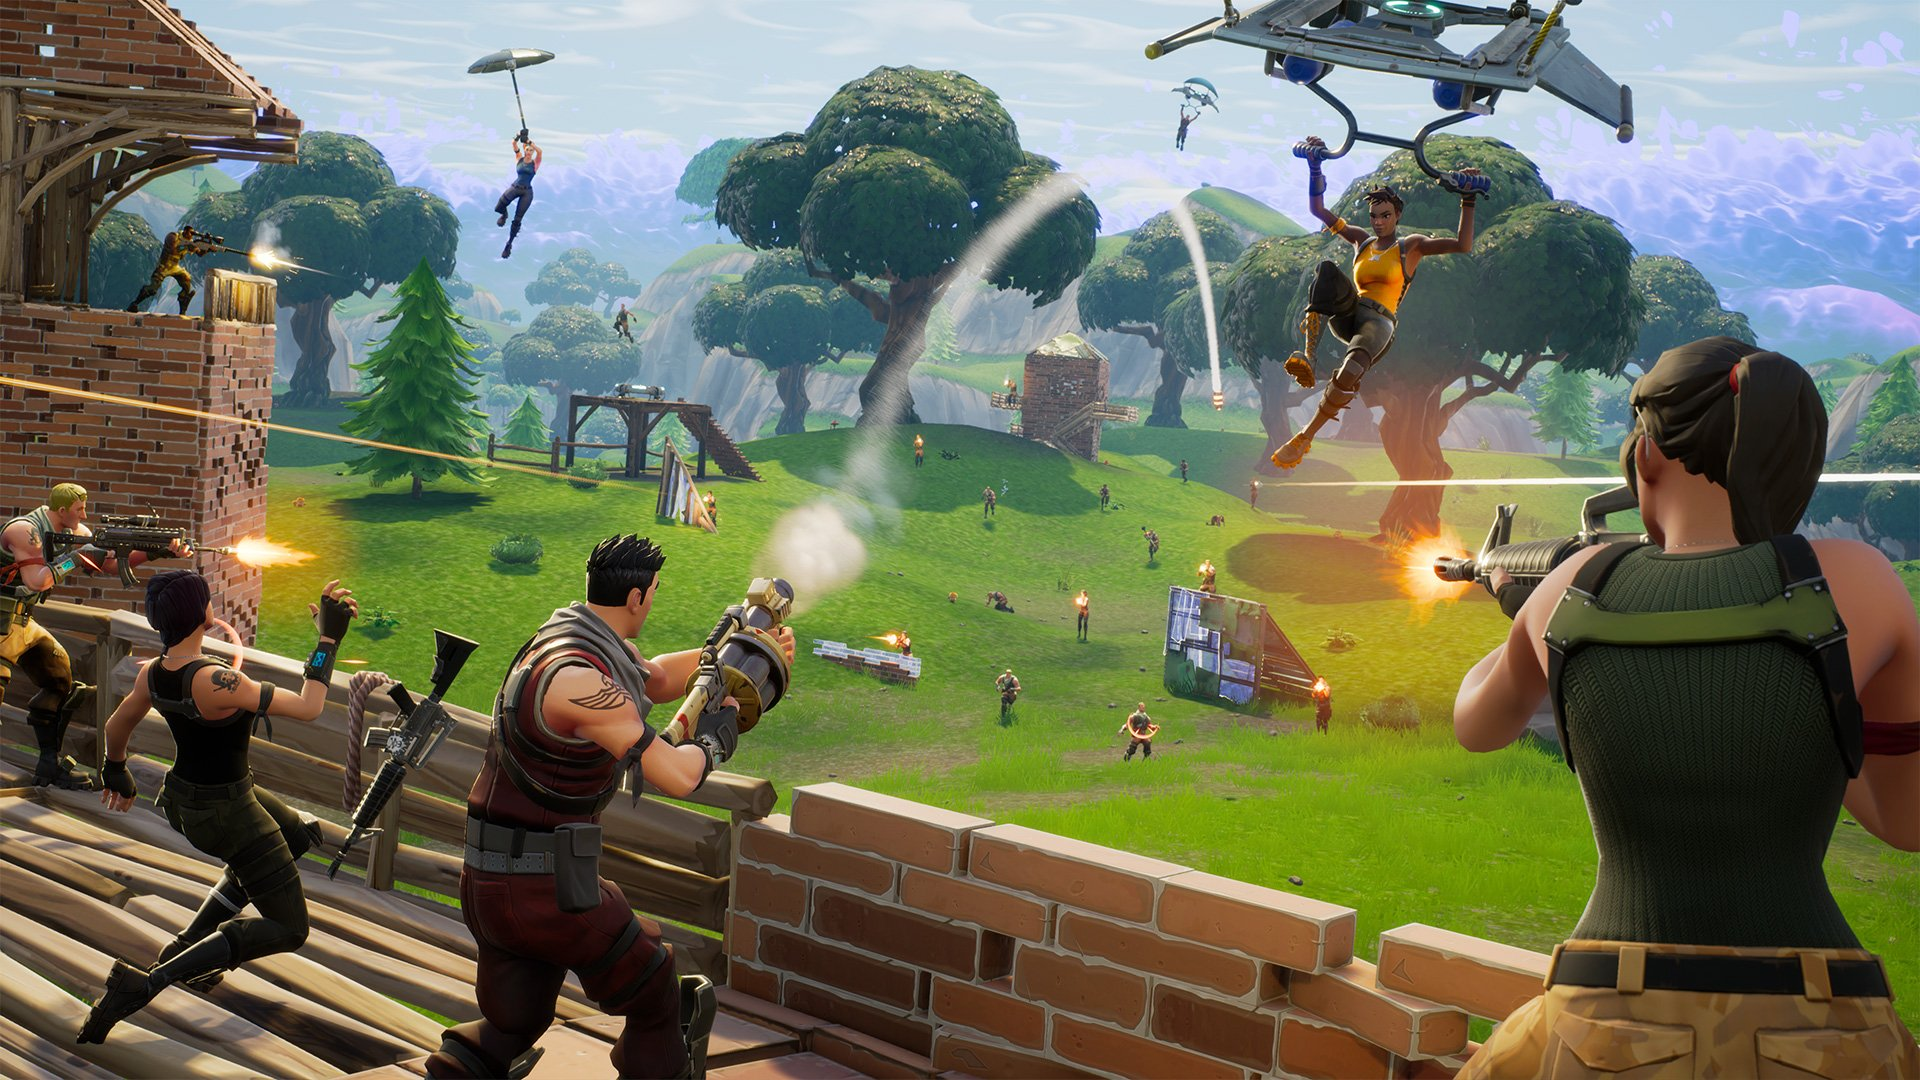 Did Epic respond to the breach in an appropriate time frame?